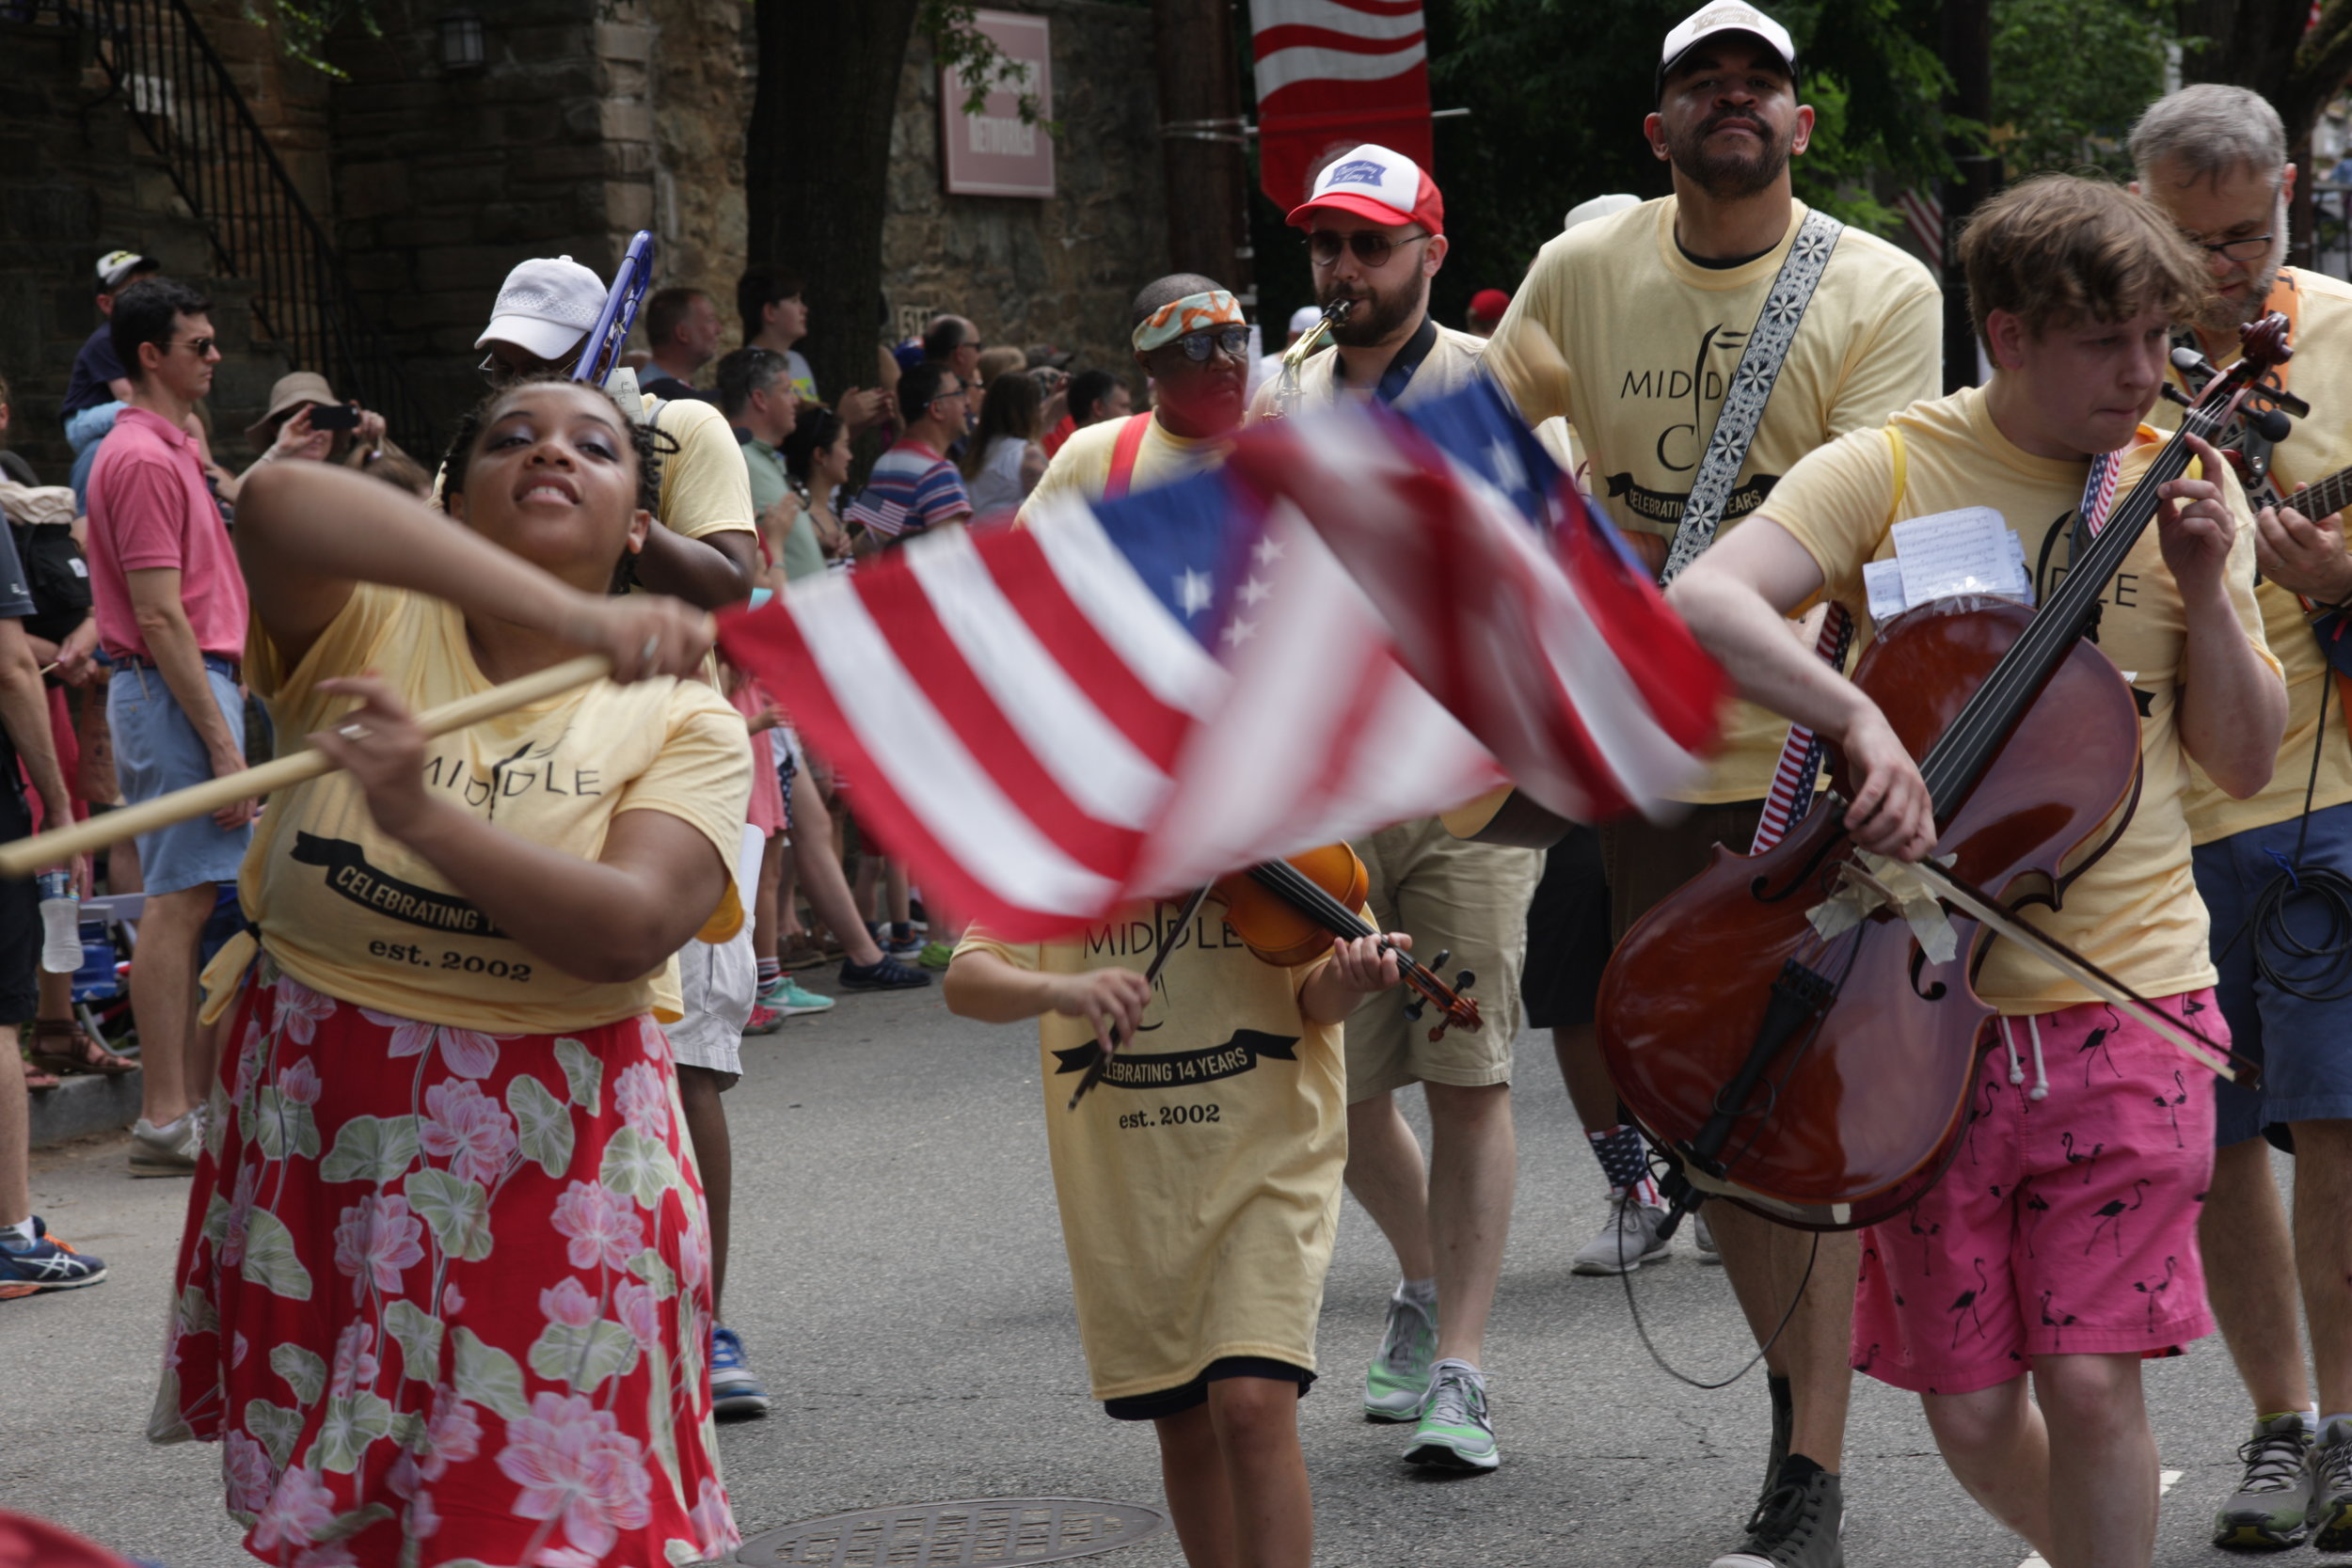 Teachers, staff, and students at Middle C will be marching in the Palisades 4th of July Parade! Always a fun time, we encourage anyone who wants to join in to stop by the store at 10 a.m. or meet us on Whitehaven Parkway, off Foxhall Rd. NW, which is where the parade starts. Even if you don't play an instrument, singing and cheering along is always welcome.   Details on the parade here .